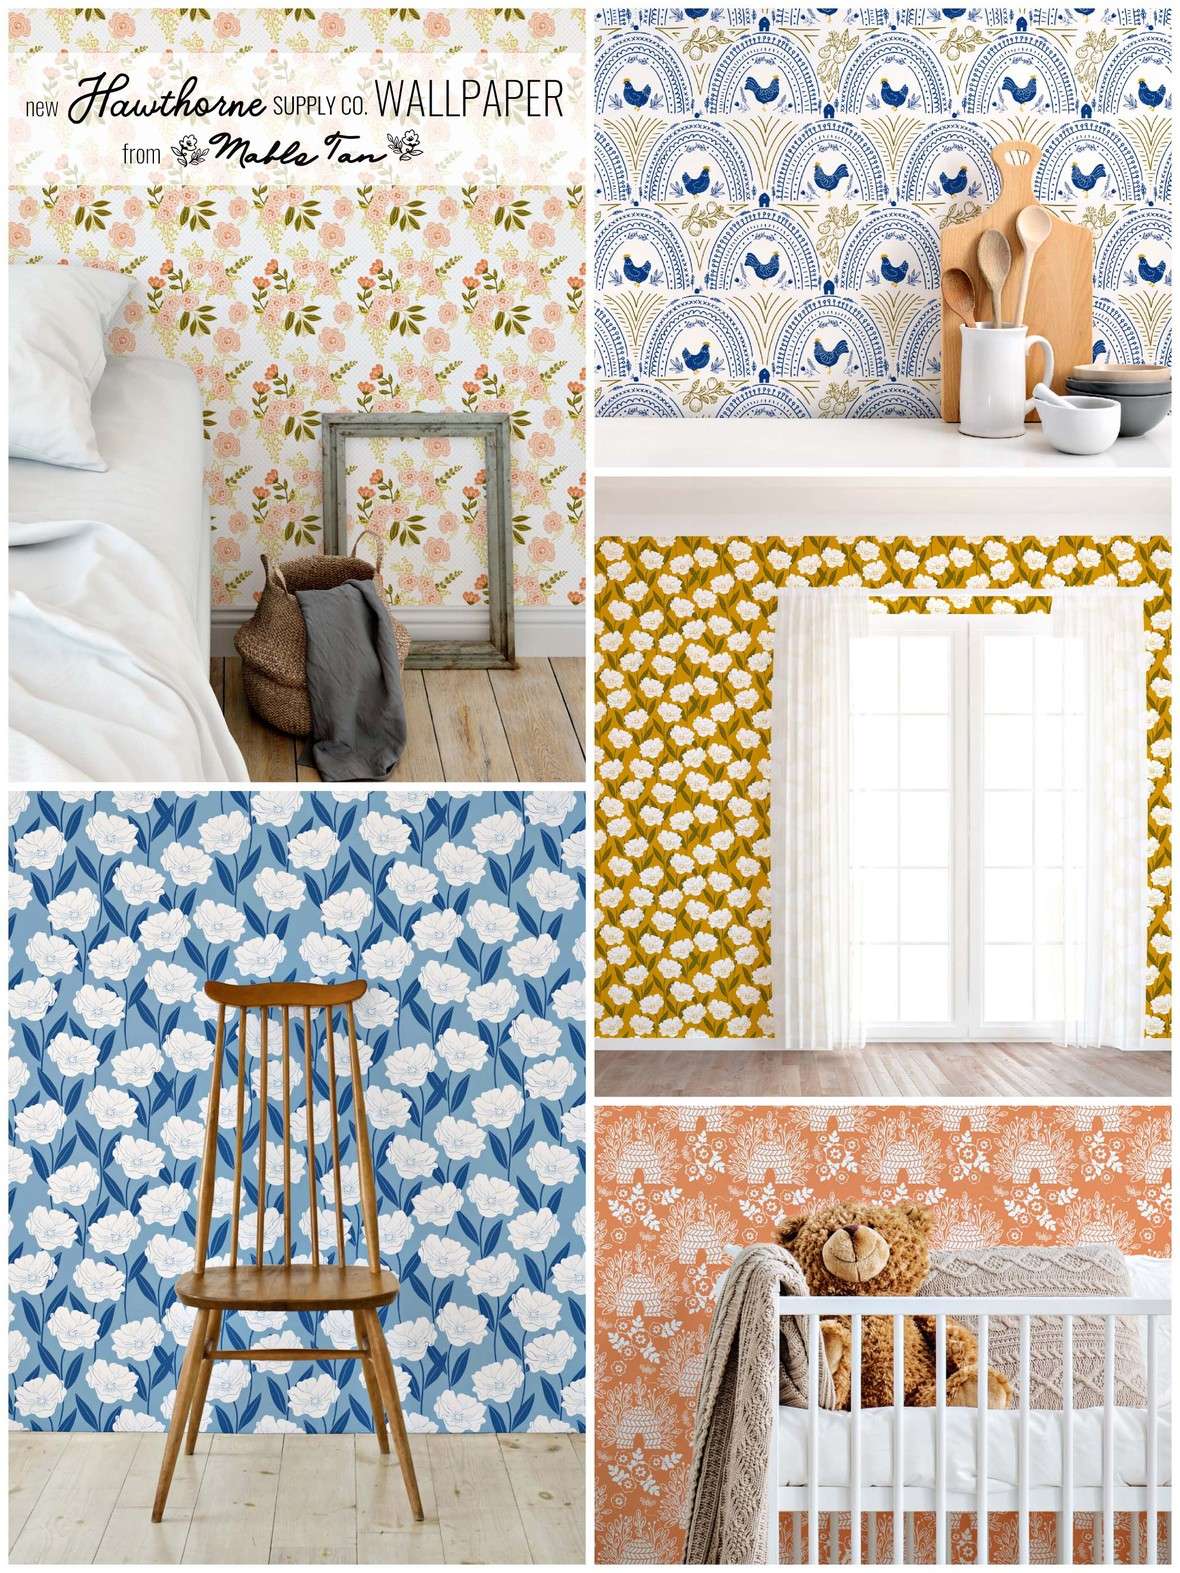 Mable Tan Modern Farmhouse Wallpaper at Hawthorne Supply Co